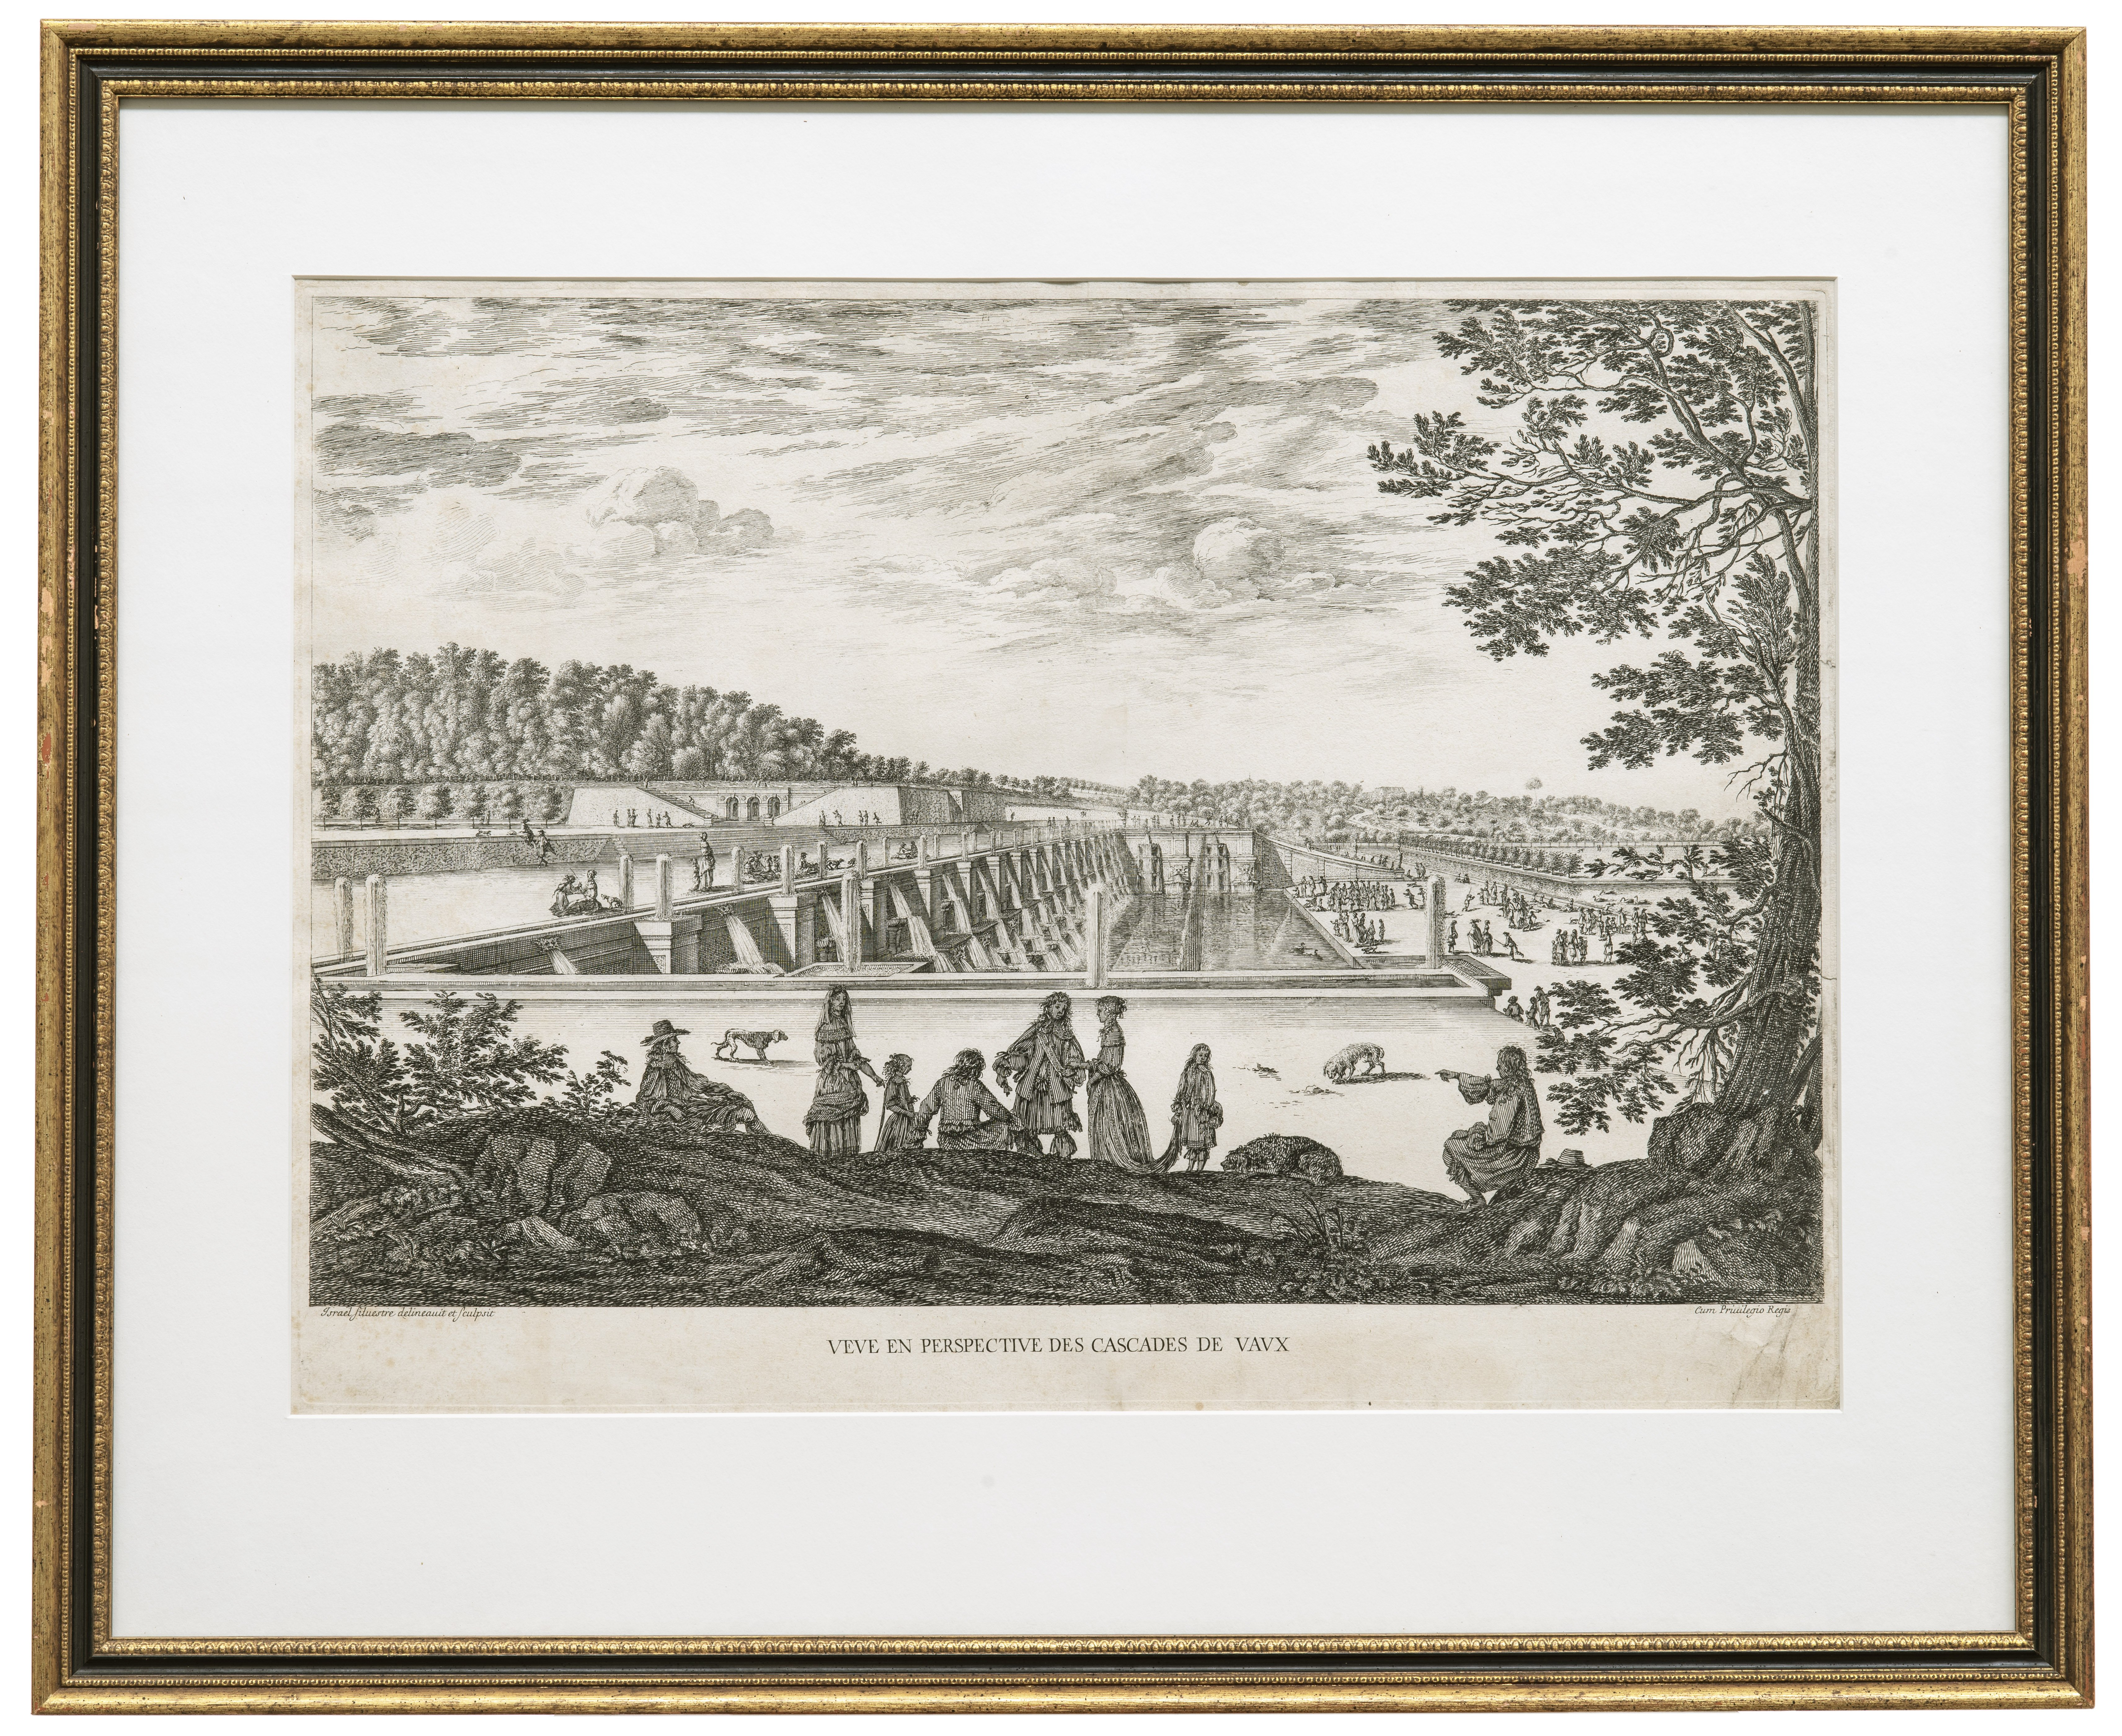 A Framed Engraving by Israel Silvestre Veve En Perspective Des Cascases De Vavx View & Perspective of The Fountains In Vaux